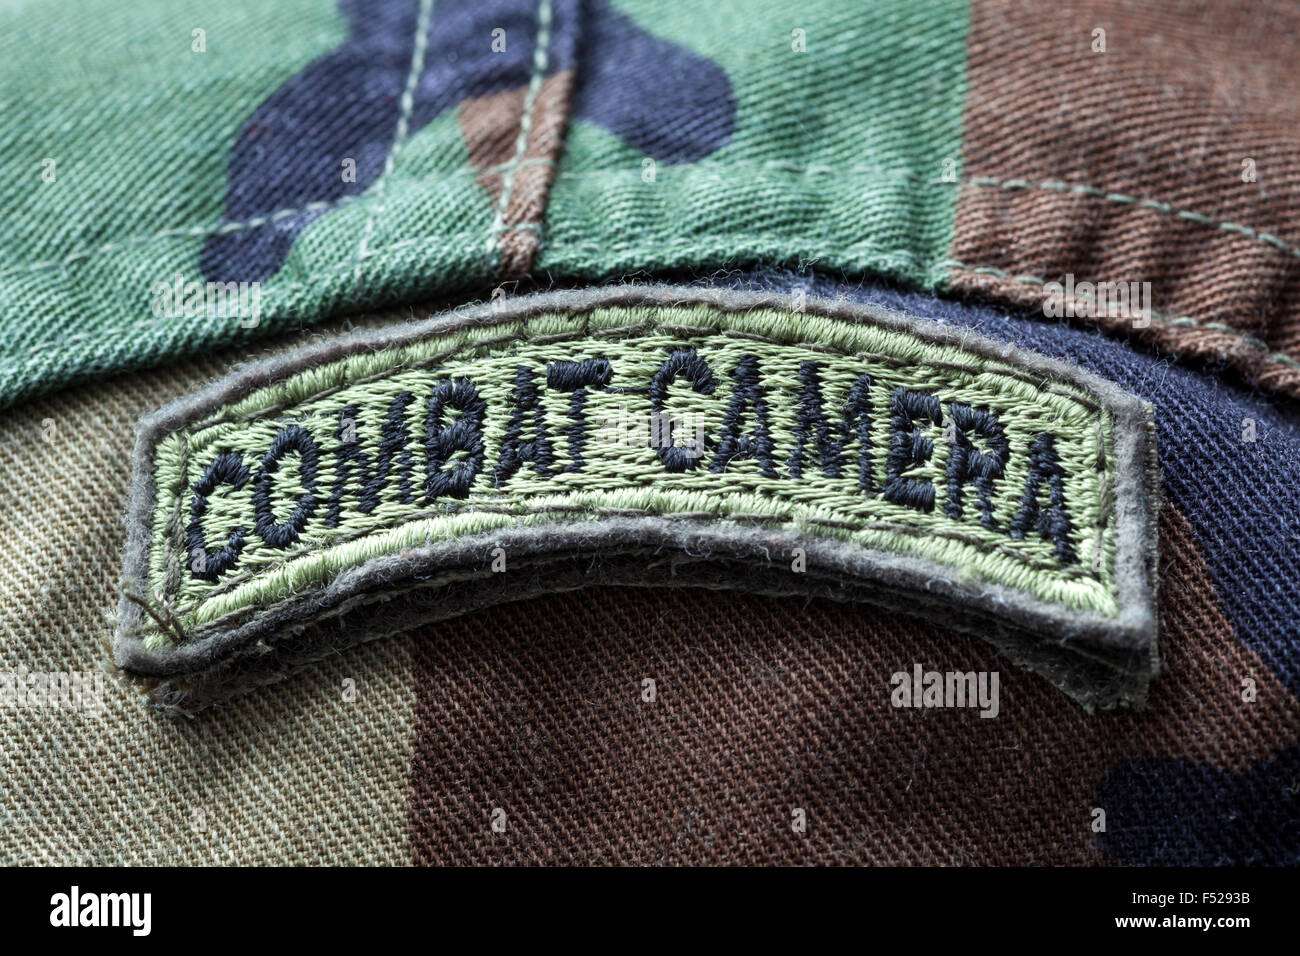 Close-up of Combat Camera army patch on a camo uniform - Stock Image